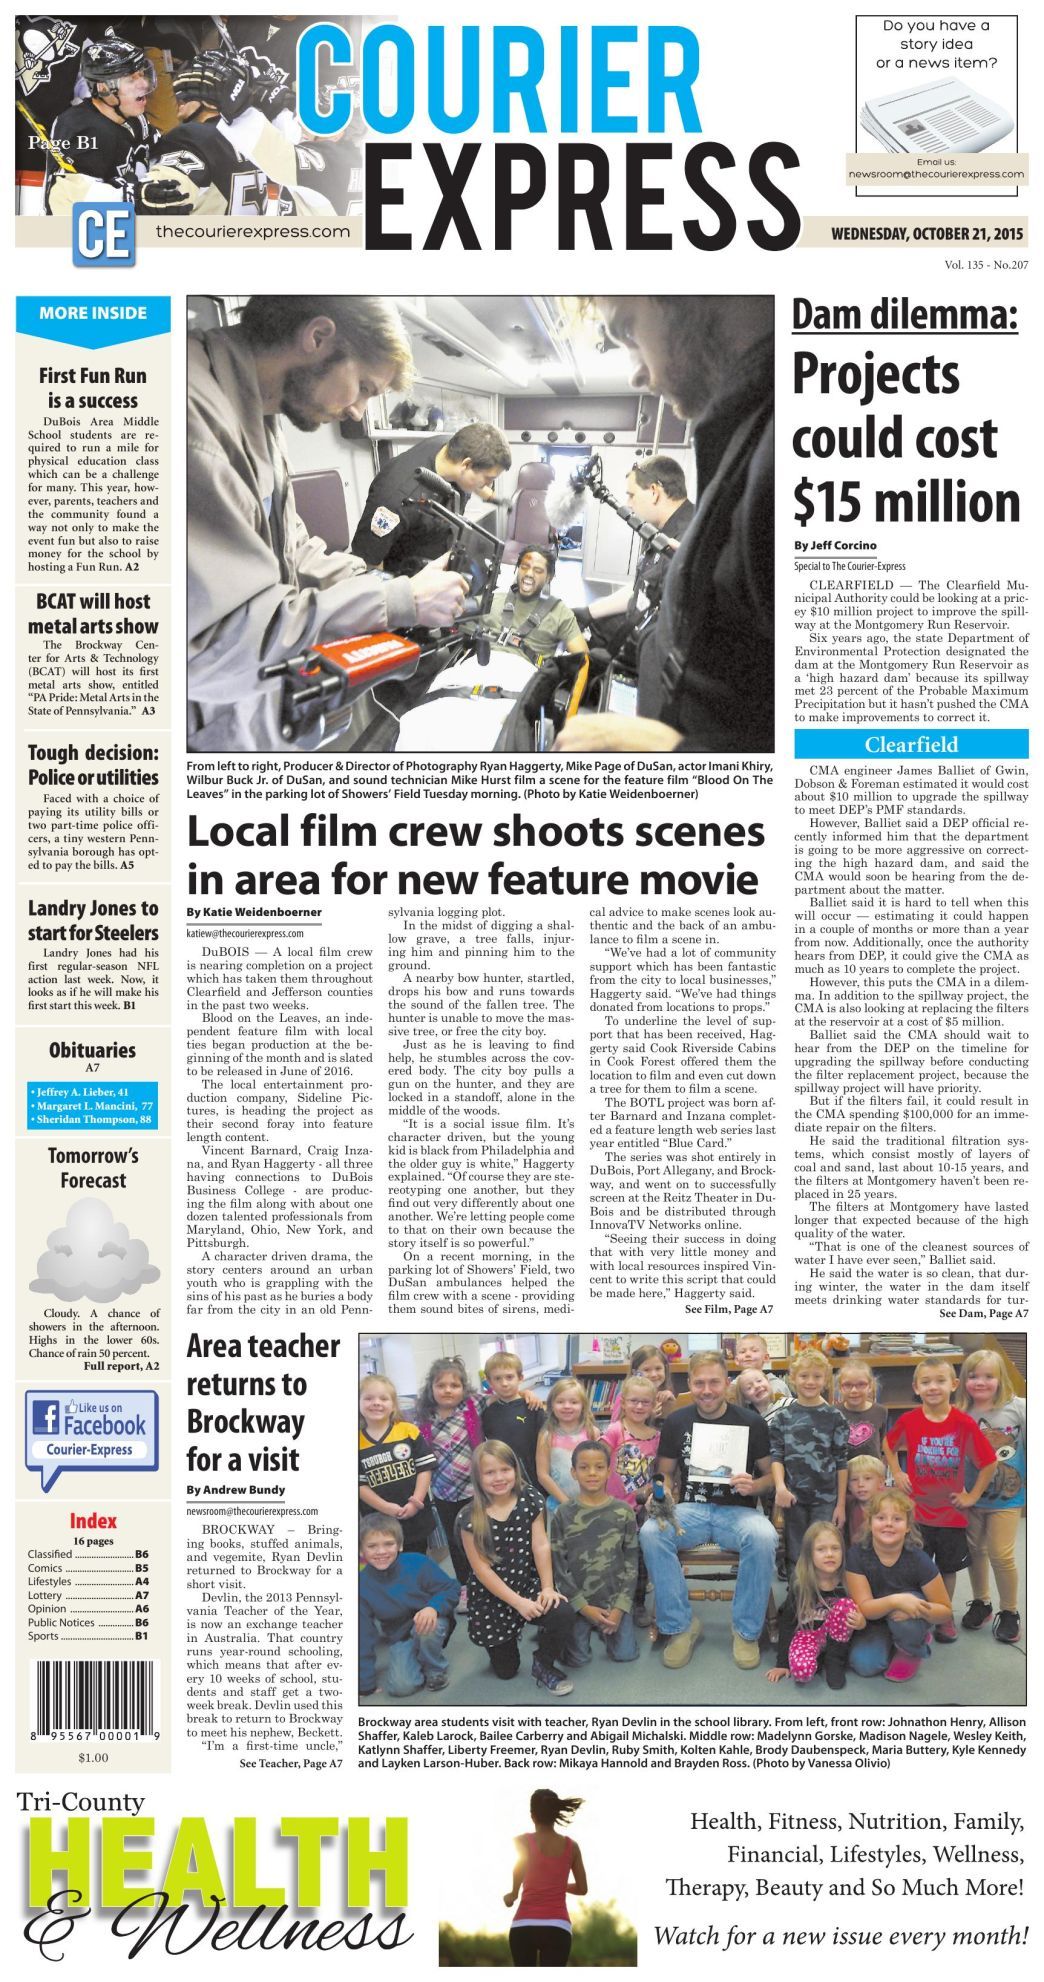 Today's Front Page